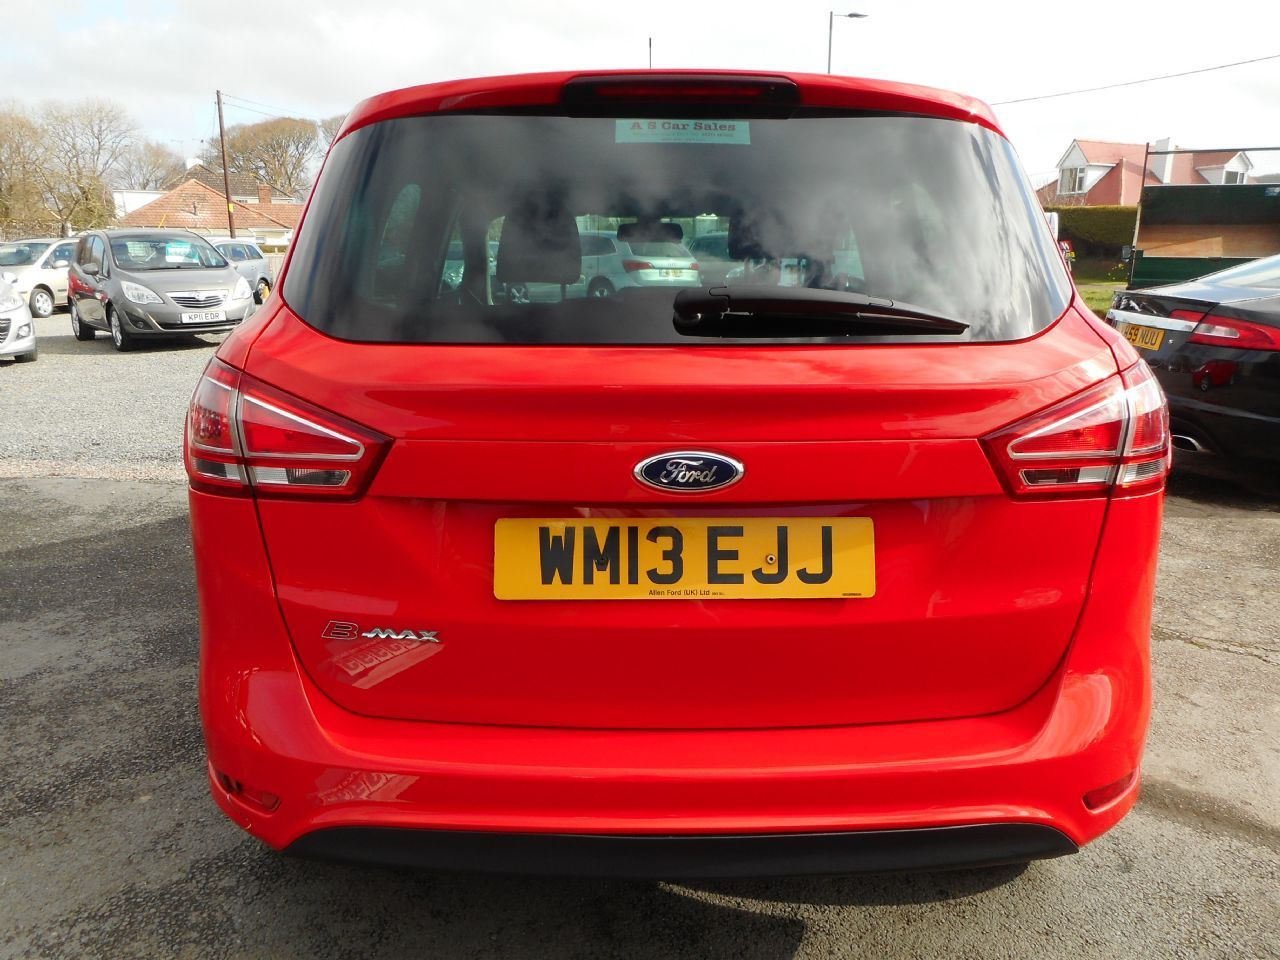 FORD B-MAX 1.4 90PS Zetec (2013) - Picture 15